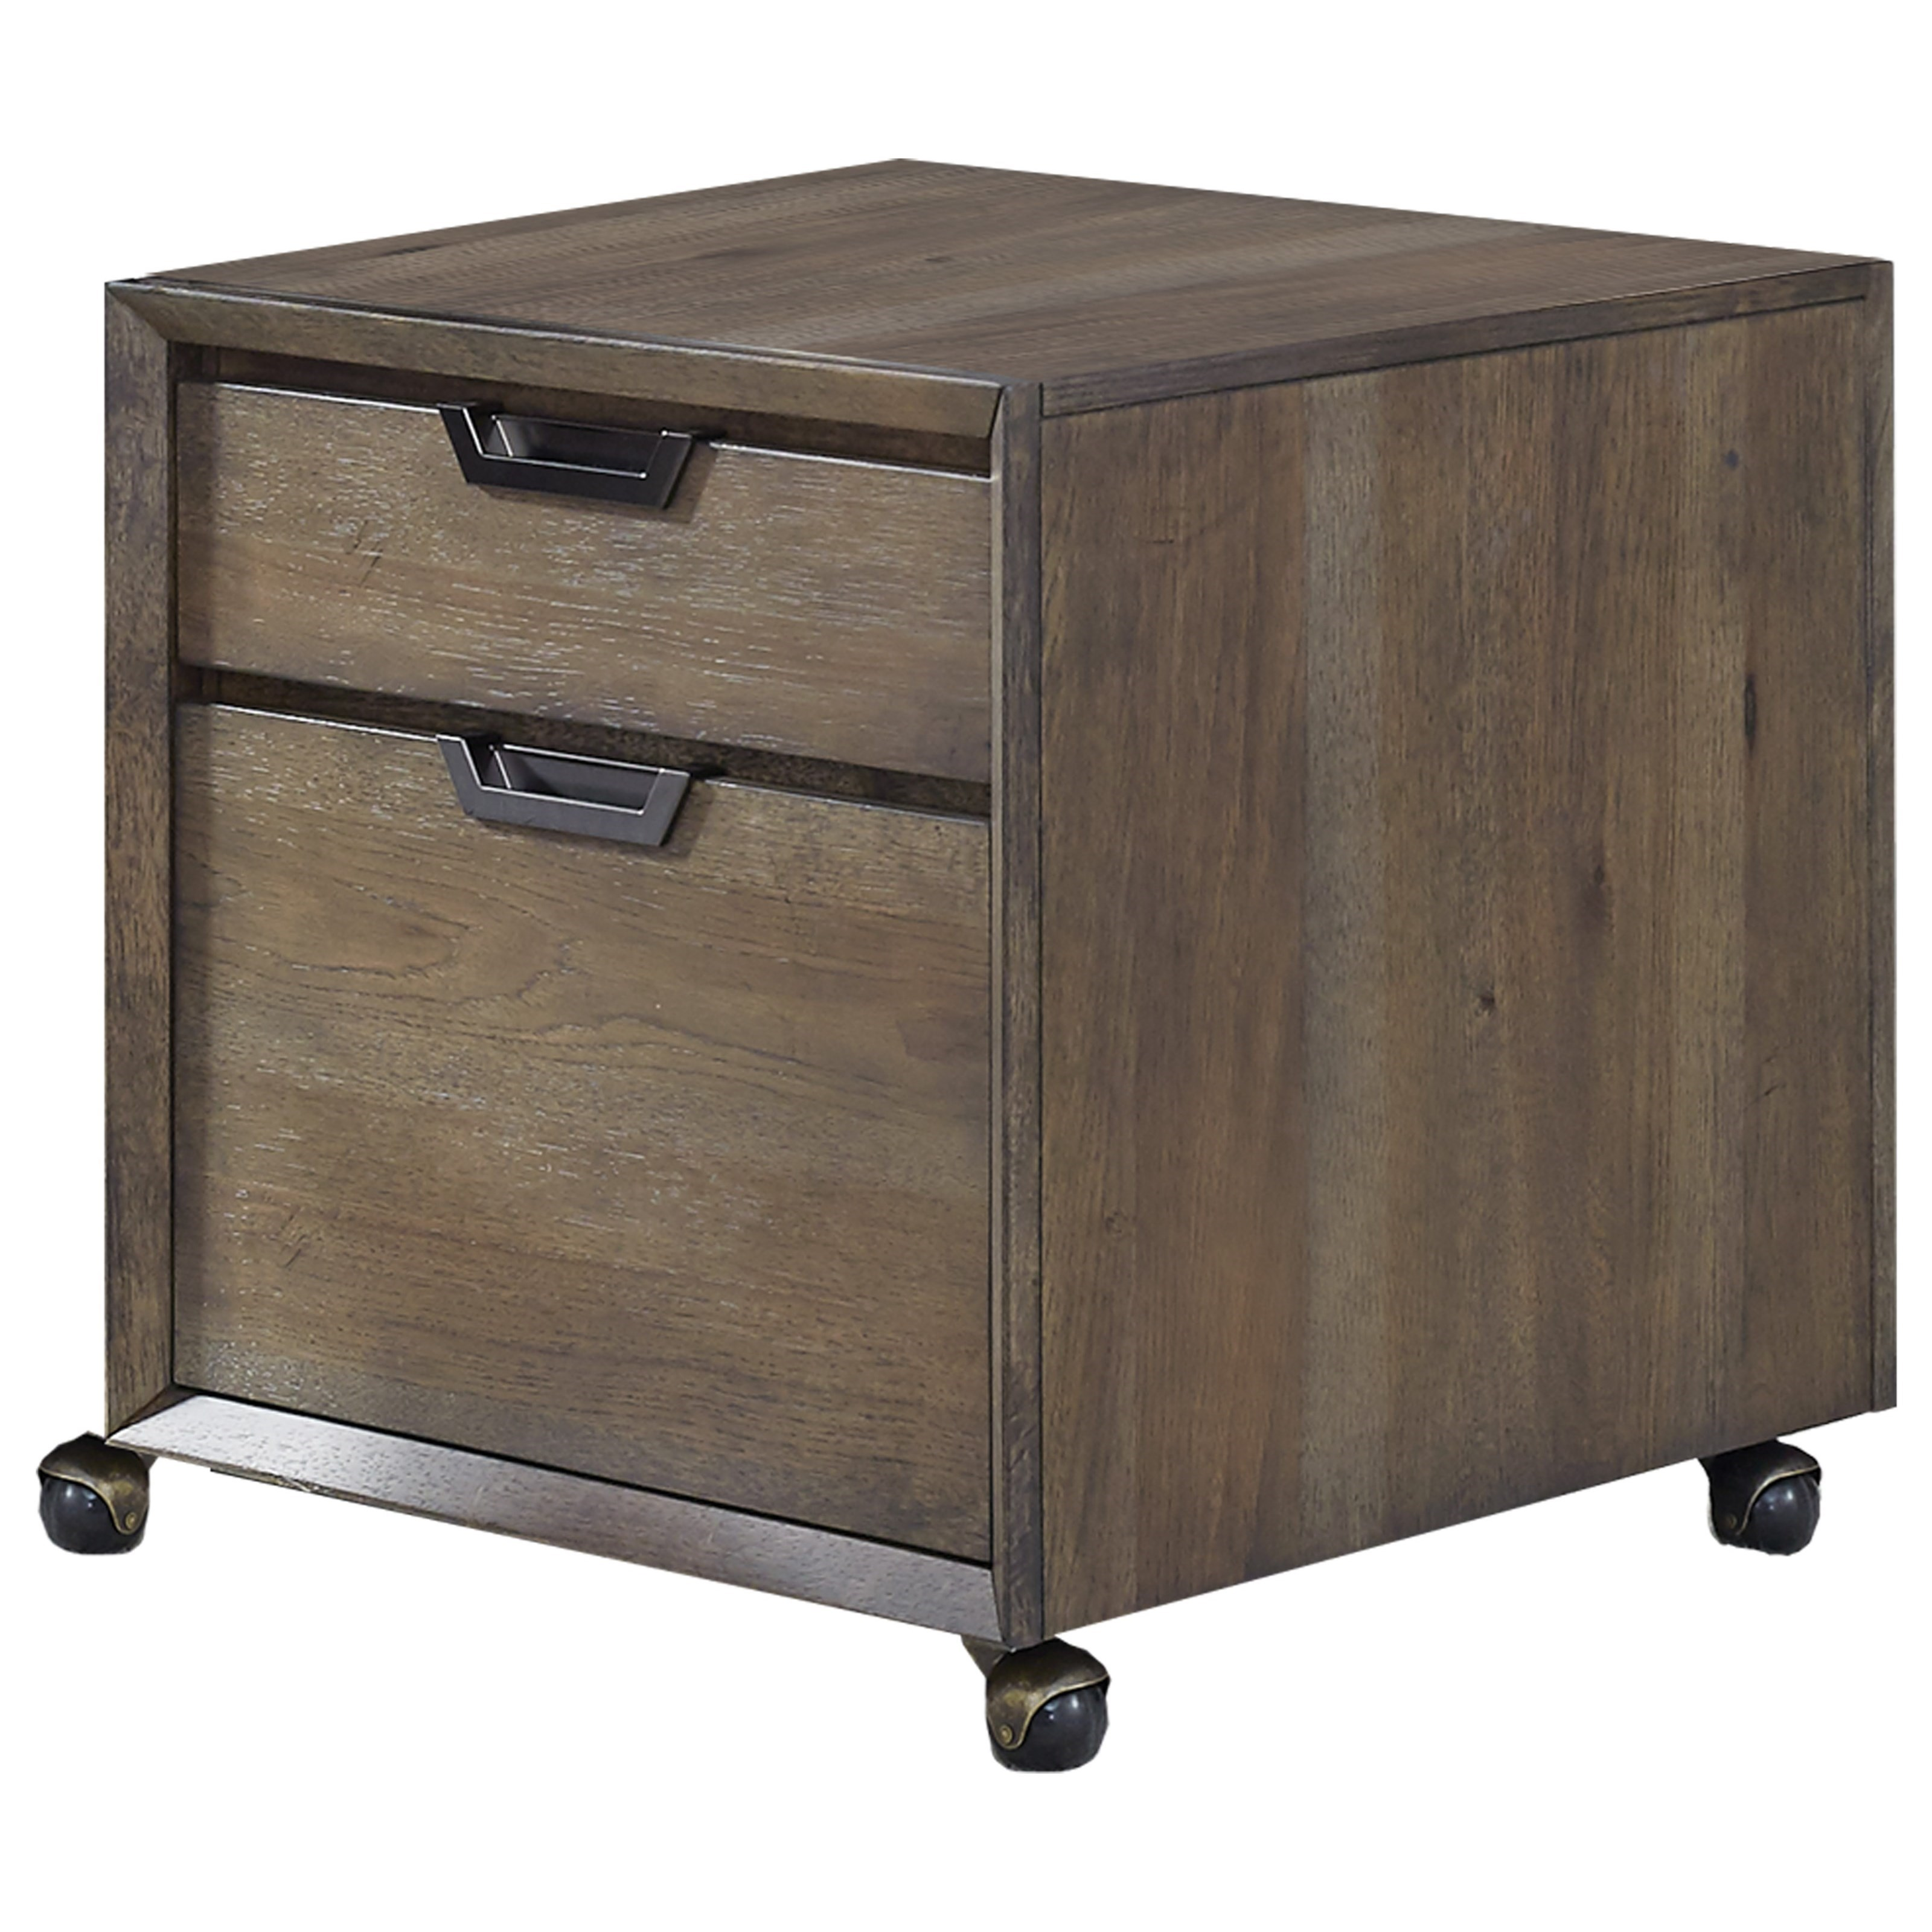 Scout Scout Rolling File Cabinet by Aspenhome at Morris Home